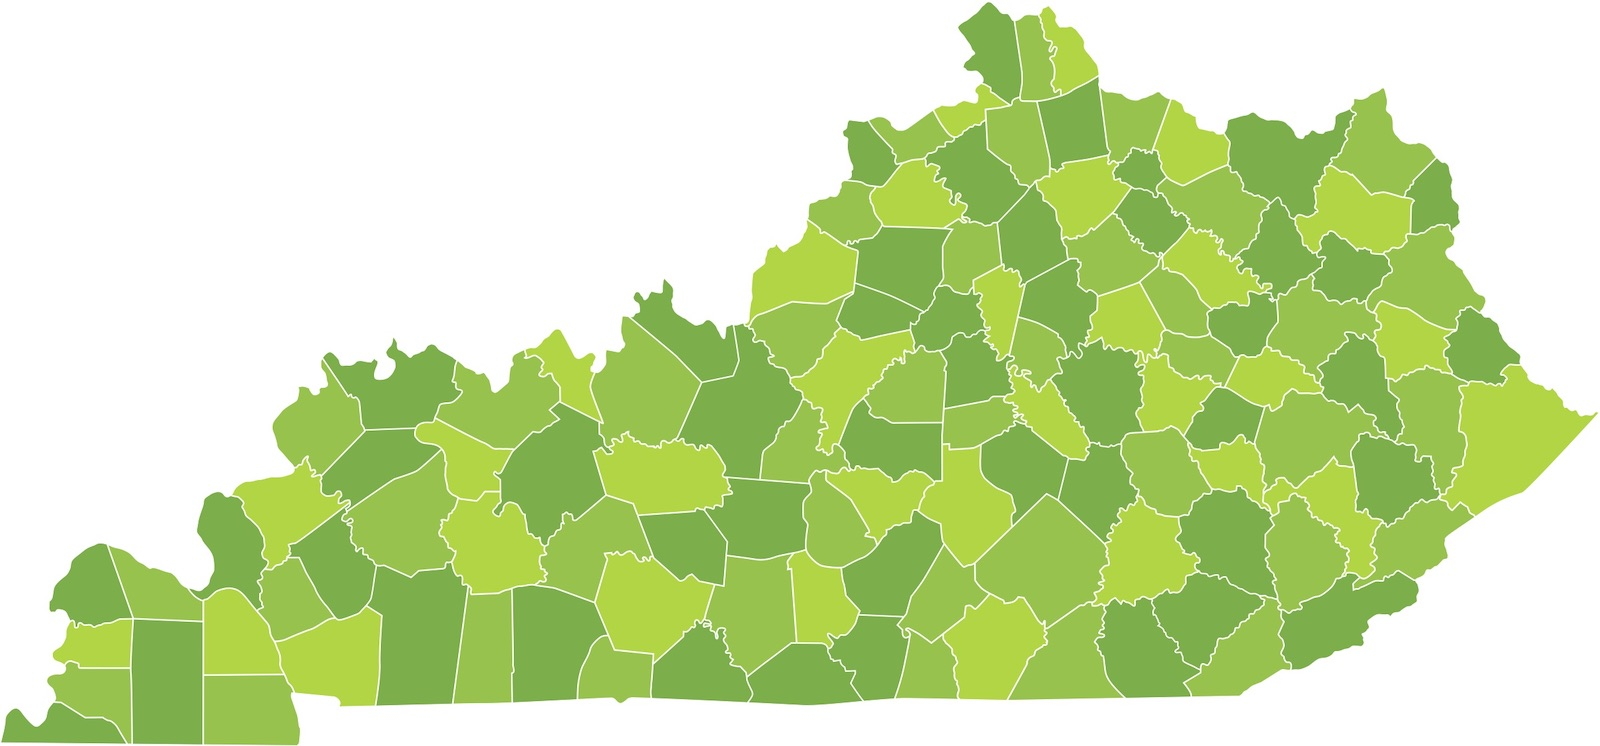 Map of Kentucky by counties with different shades of green for each county